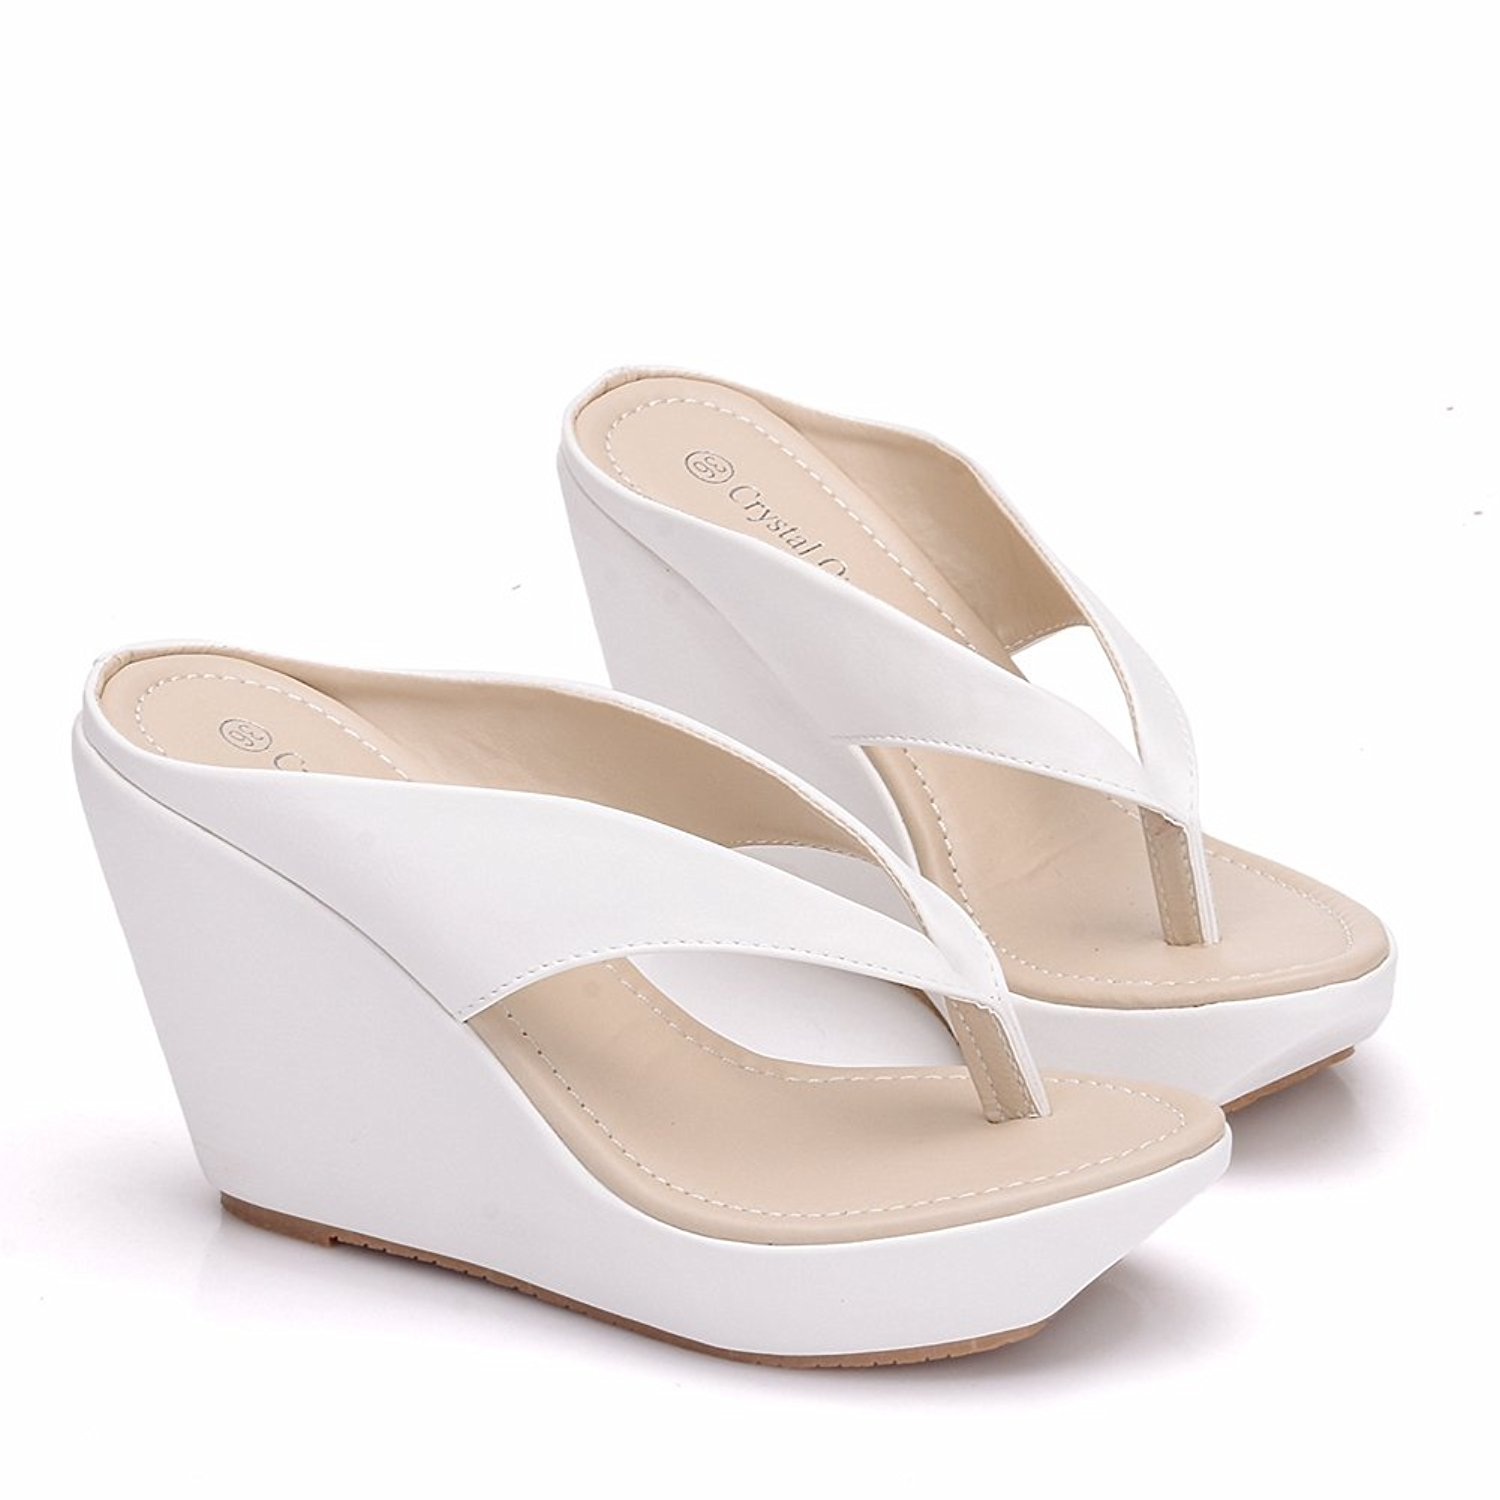 Get Quotations · Crystal Queen Women Beach Sandals Platform Wedges Sandals  High Heels Wedges Slippers Flip Flops White Flip c2063433c918